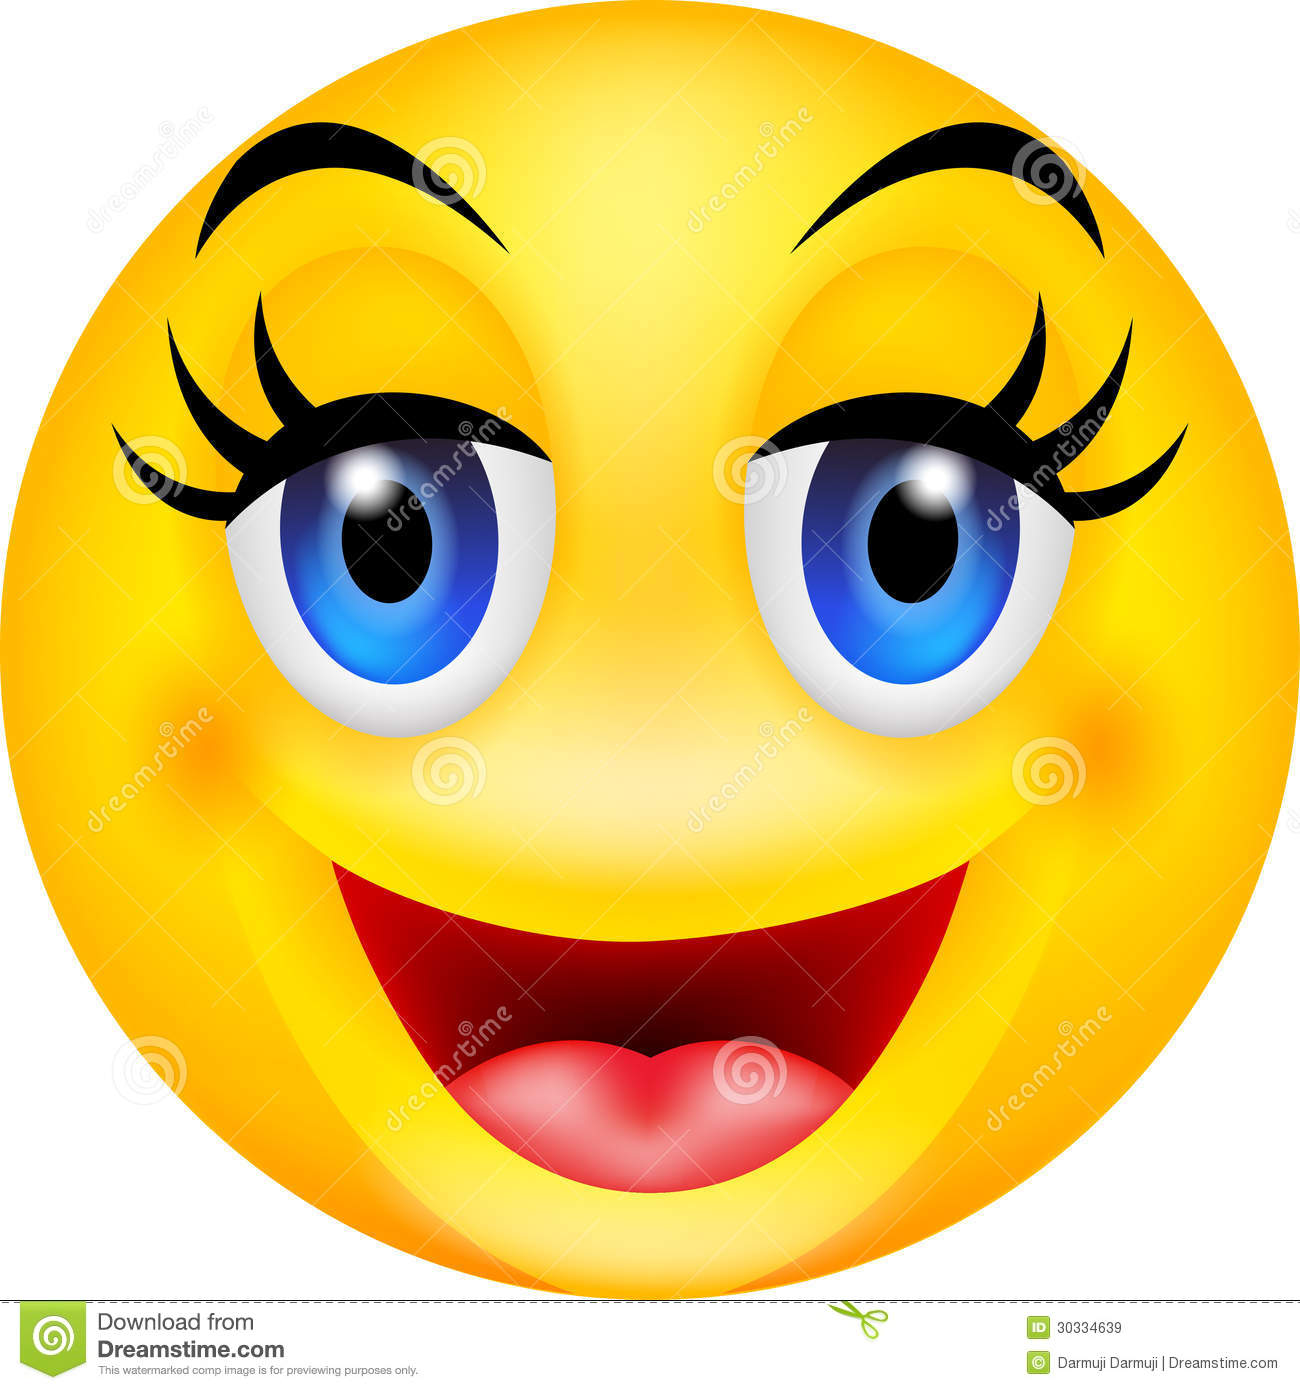 Funny smile emoticon stock vector. Illustration of ball ...